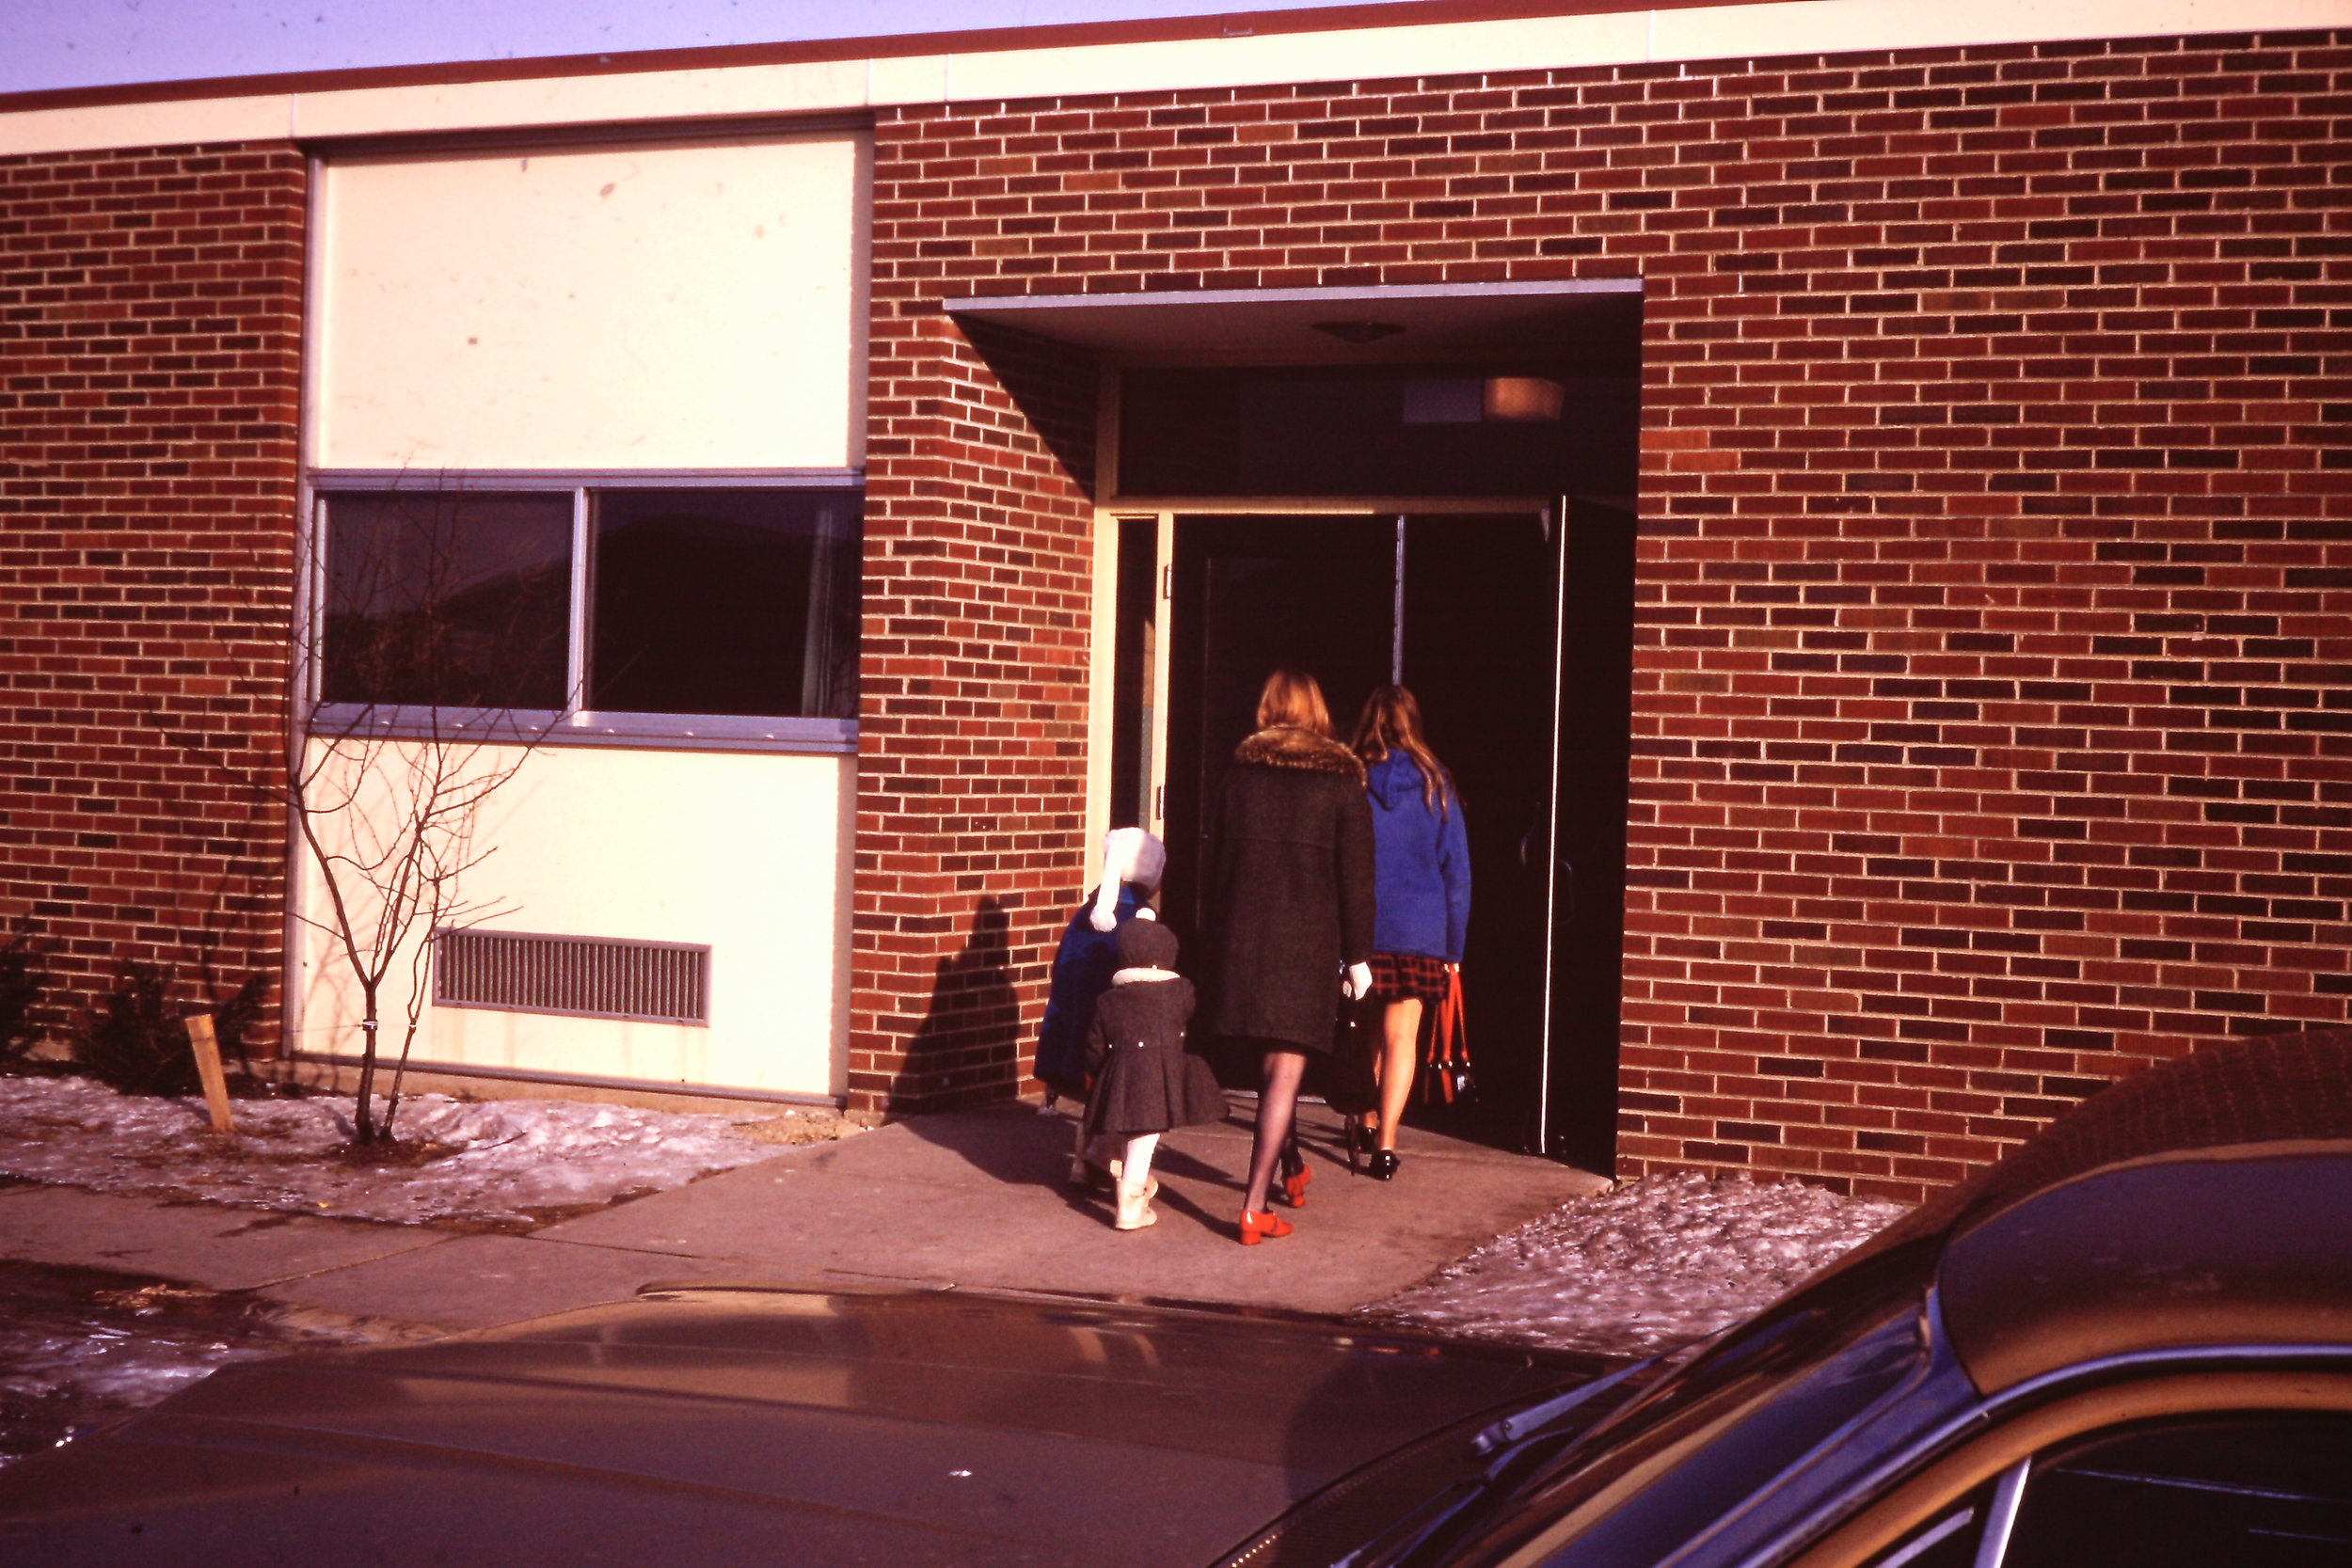 February 7. 1971 - 150 members and friends gathered for our first worship service at Virginia Lake Elementary School in Palatine.